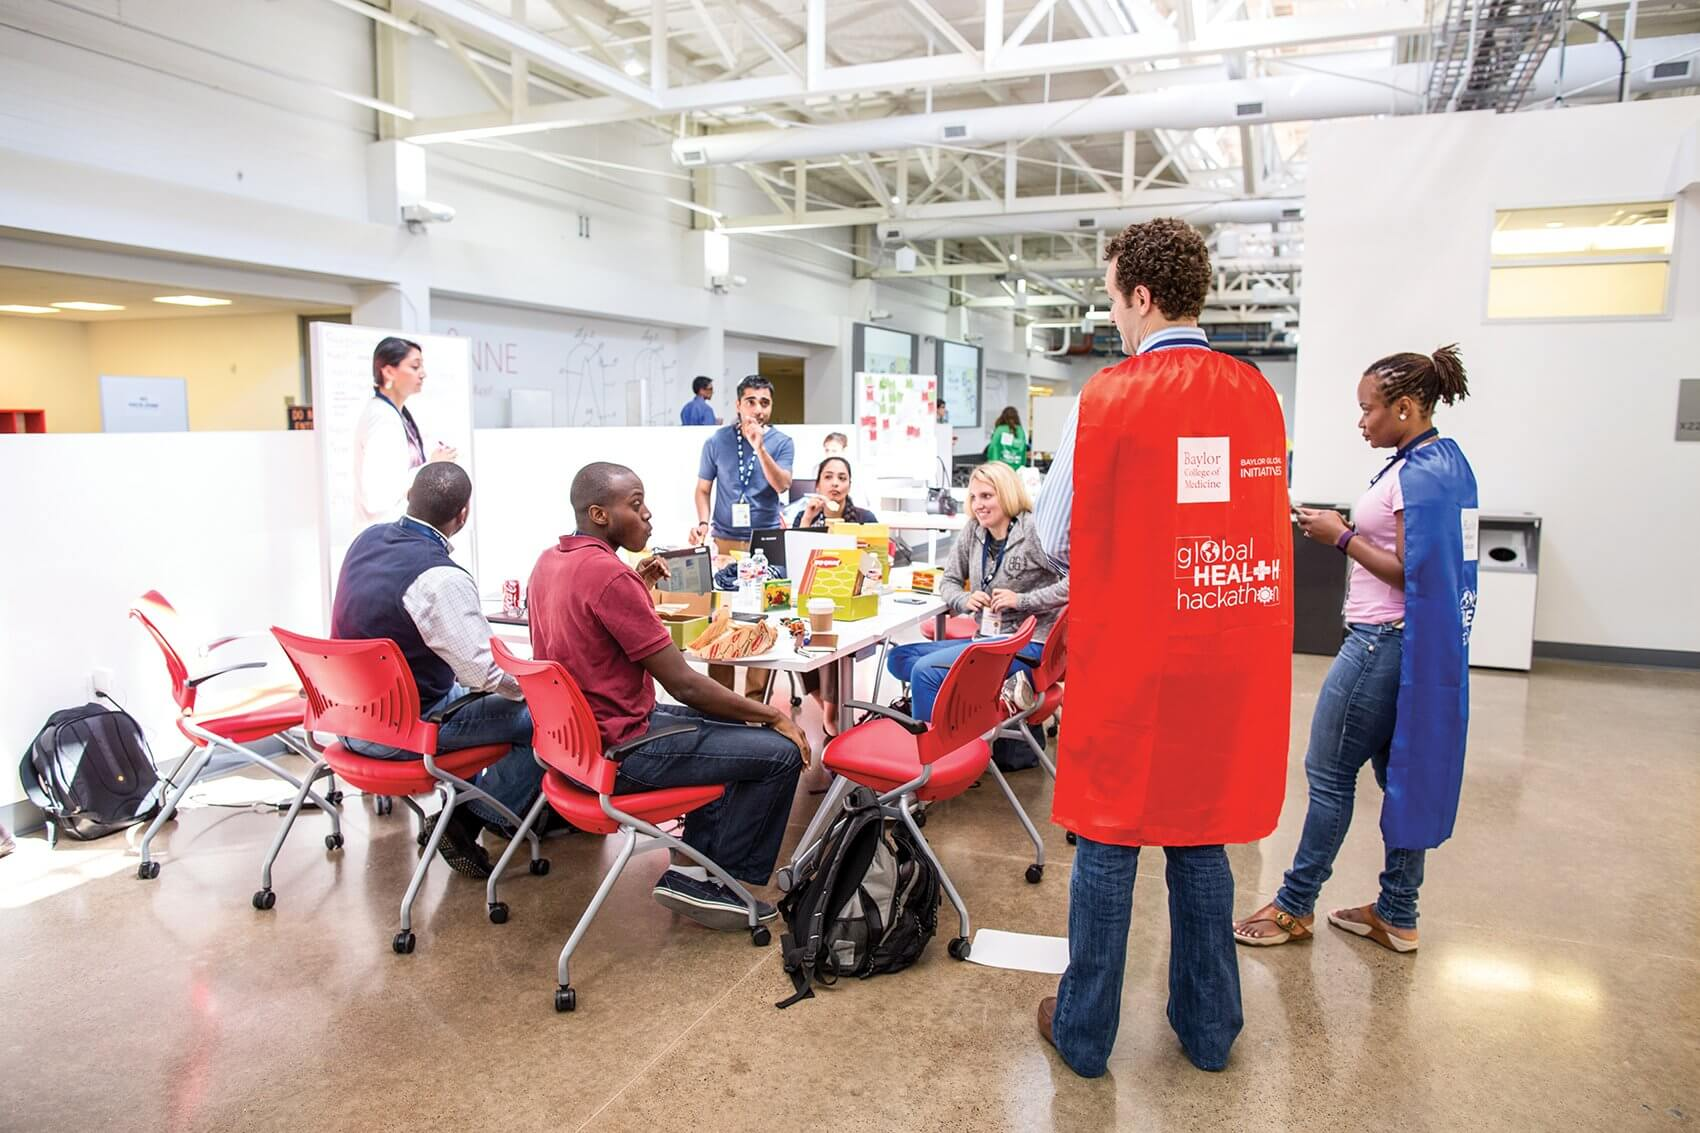 Mentor Seth Cochran (red cape) advises hackers on their pitch.